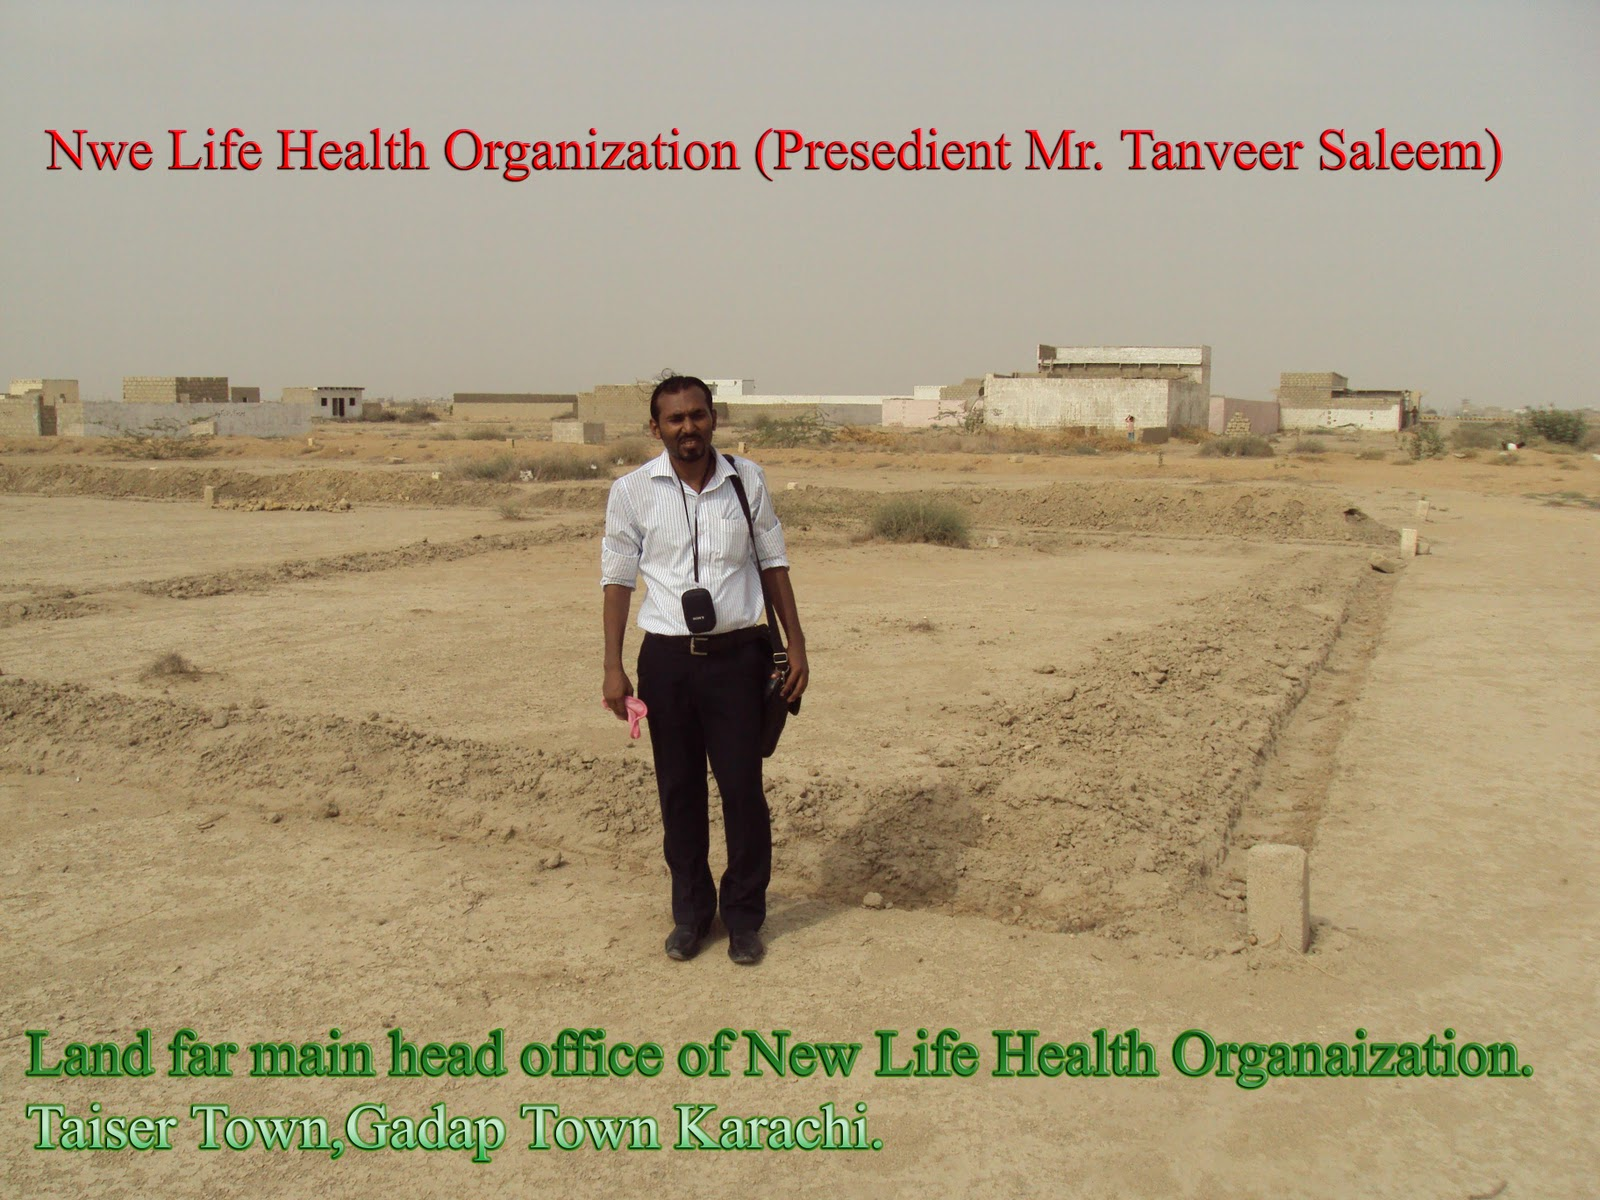 NEW LIFE HEALTH ORG